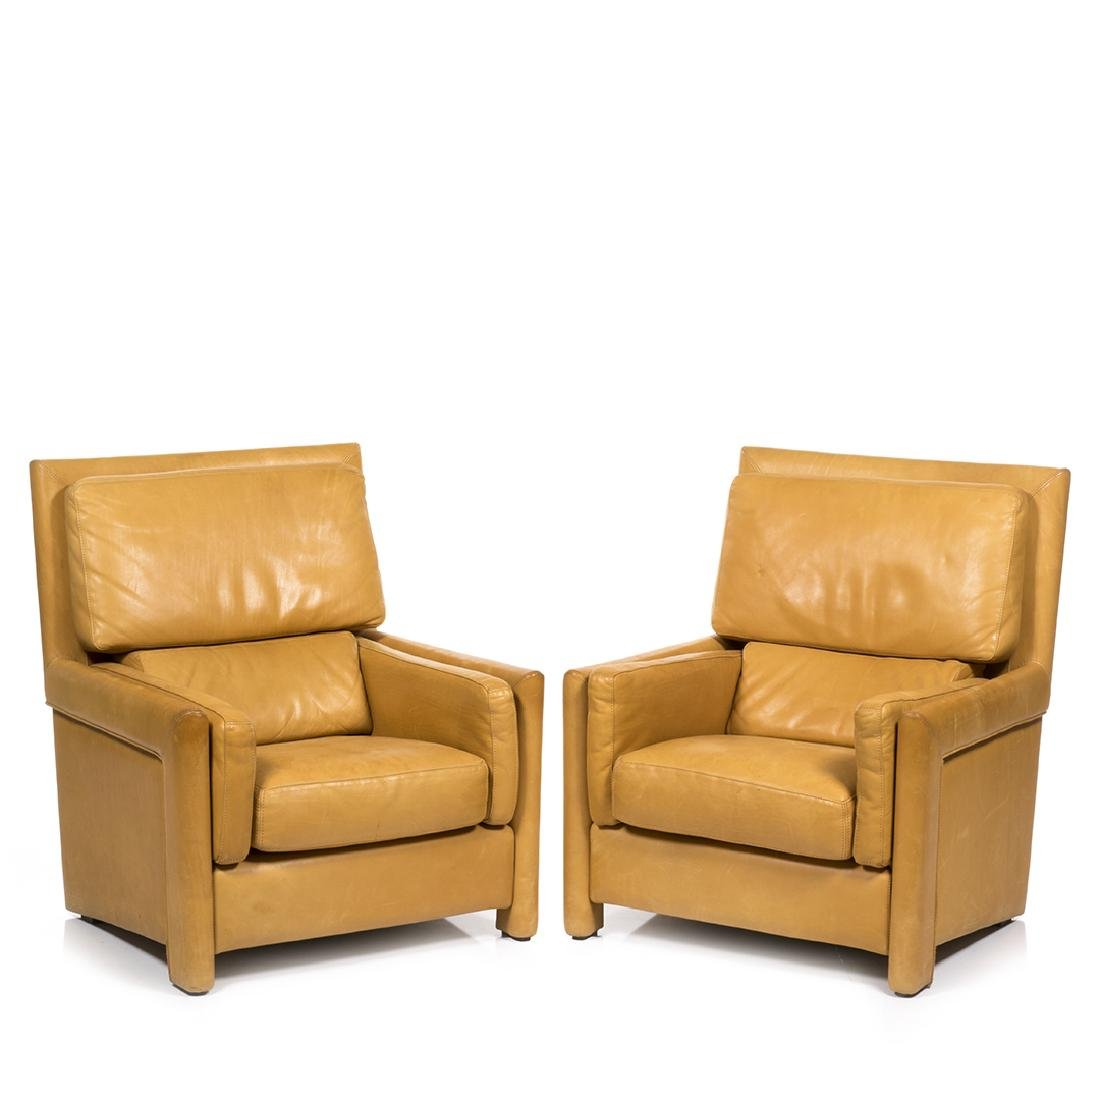 Roche Bobois Leather Club Chairs (2)